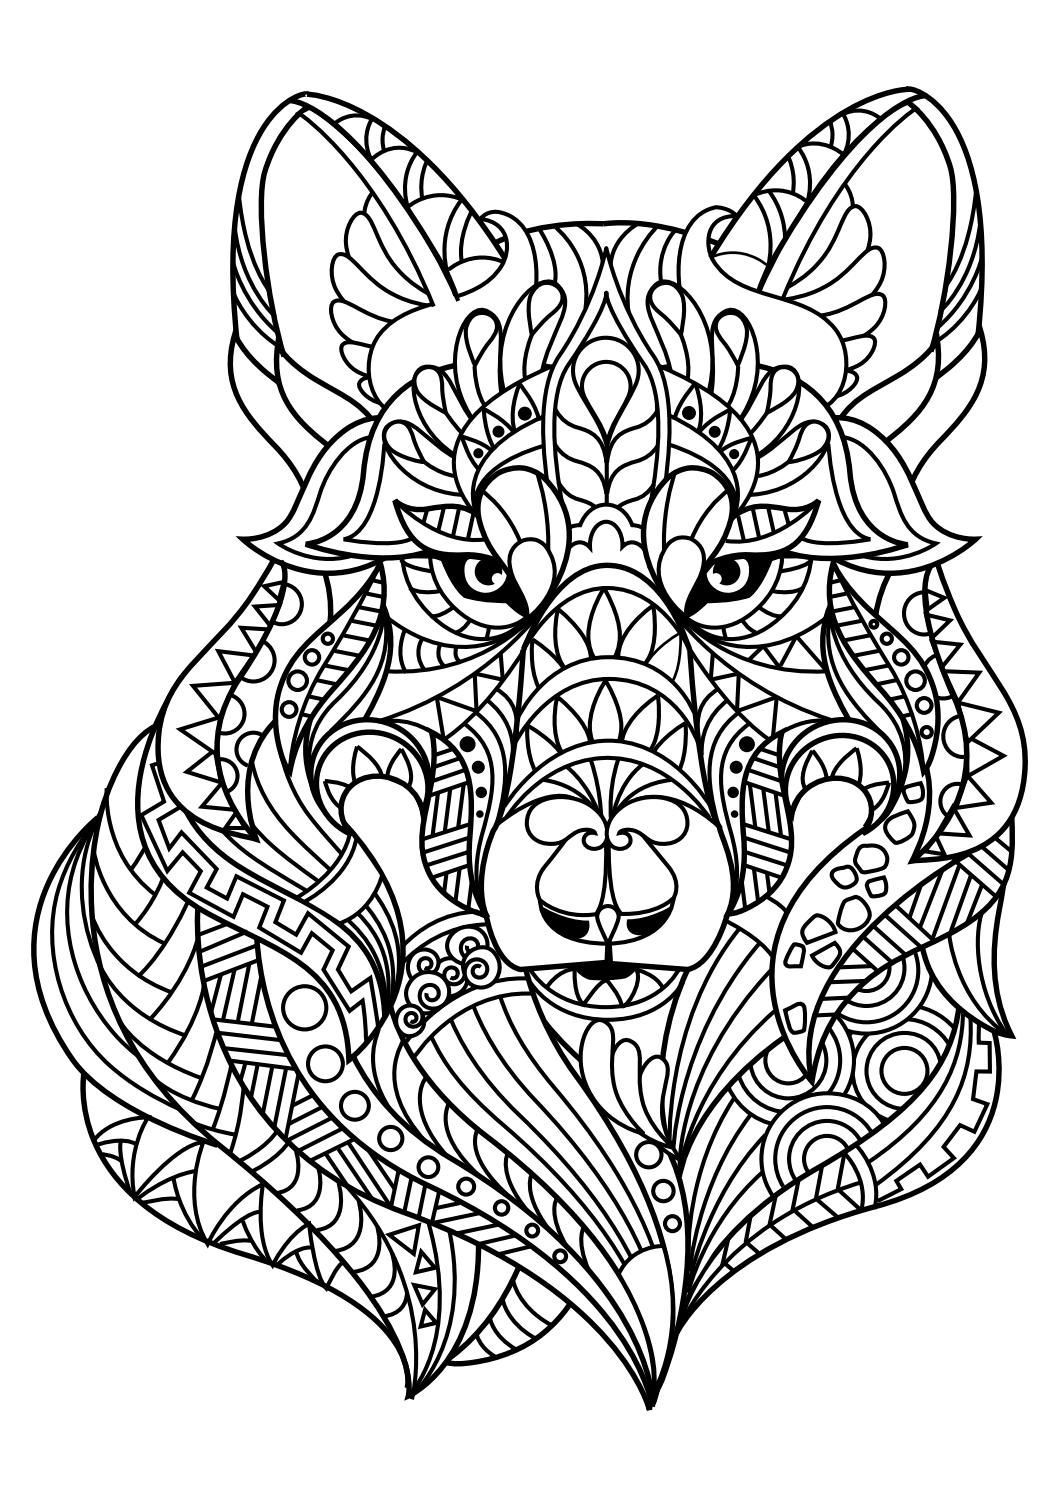 Animal Coloring Pages Pdf Coloring Pages In 2020 Dog Coloring Page Zoo Animal Coloring Pages Animal Coloring Books